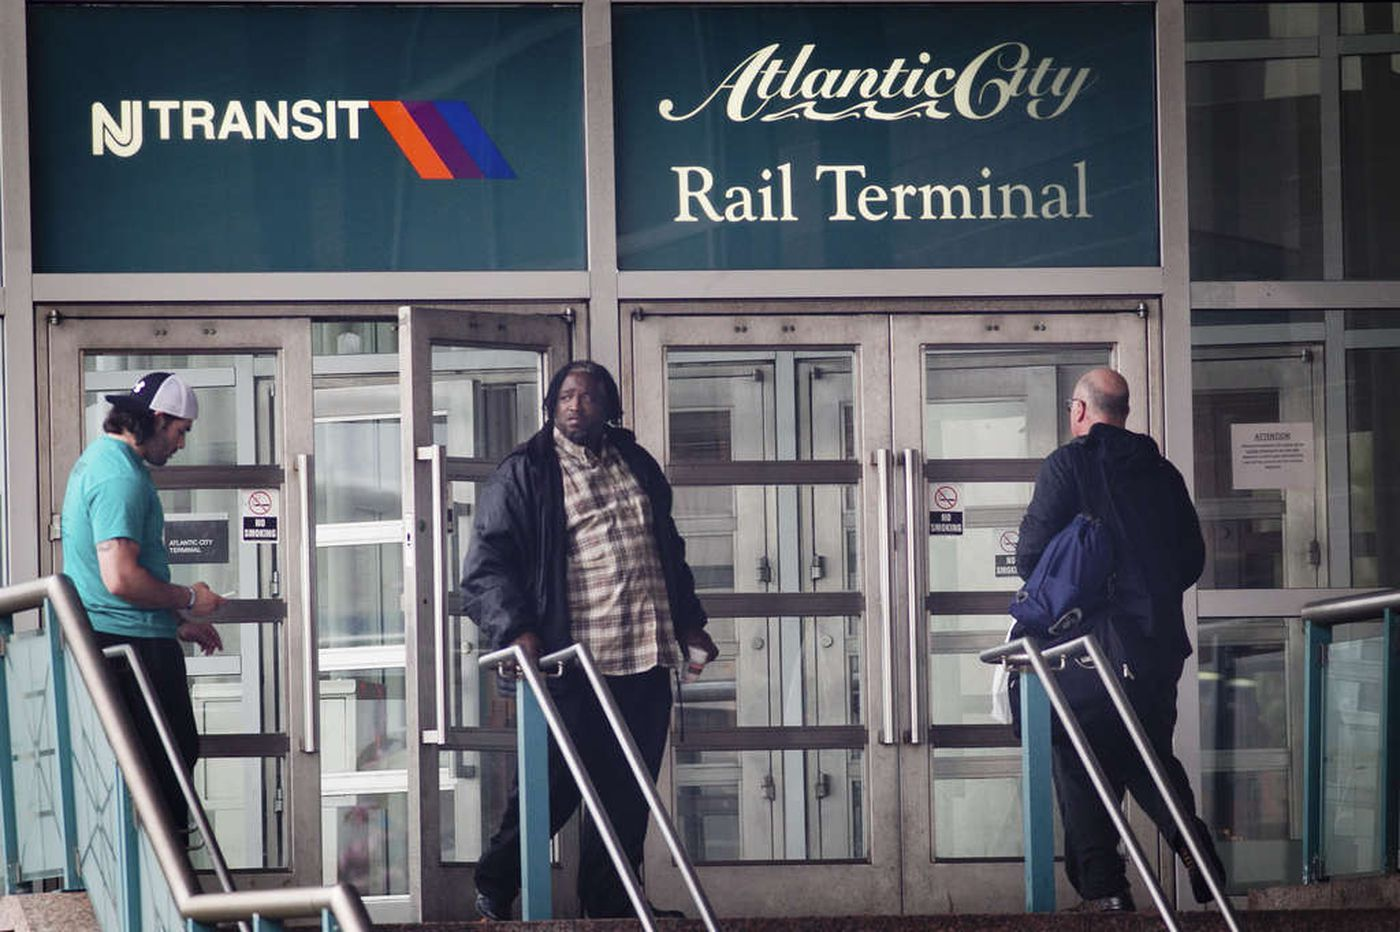 Atlantic City Rail Line conductors earned thousands in overtime while trains weren't running